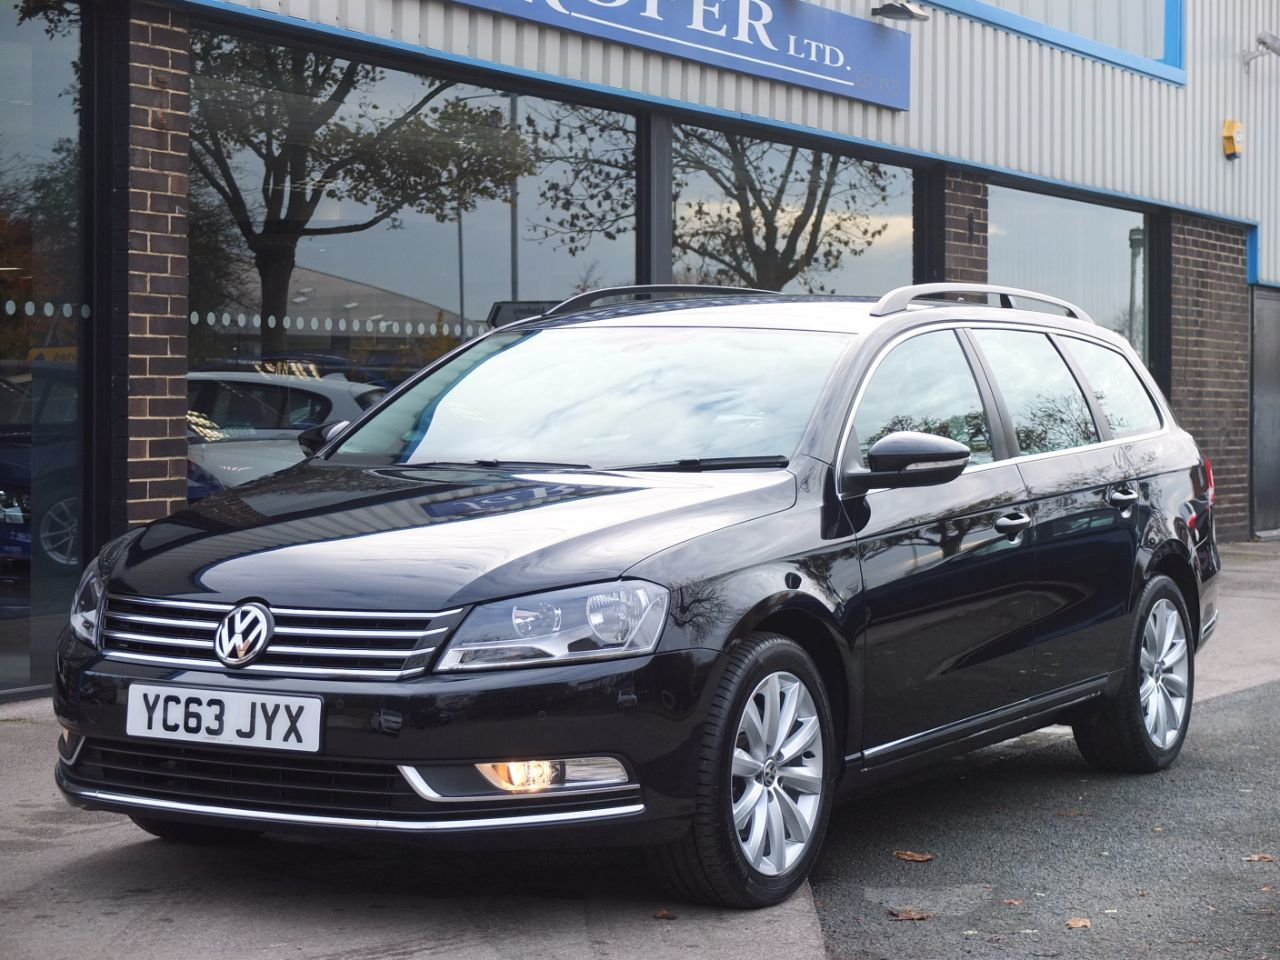 second hand volkswagen passat 2 0 tdi bluemotion tech estate highline 140ps for sale in bradford. Black Bedroom Furniture Sets. Home Design Ideas